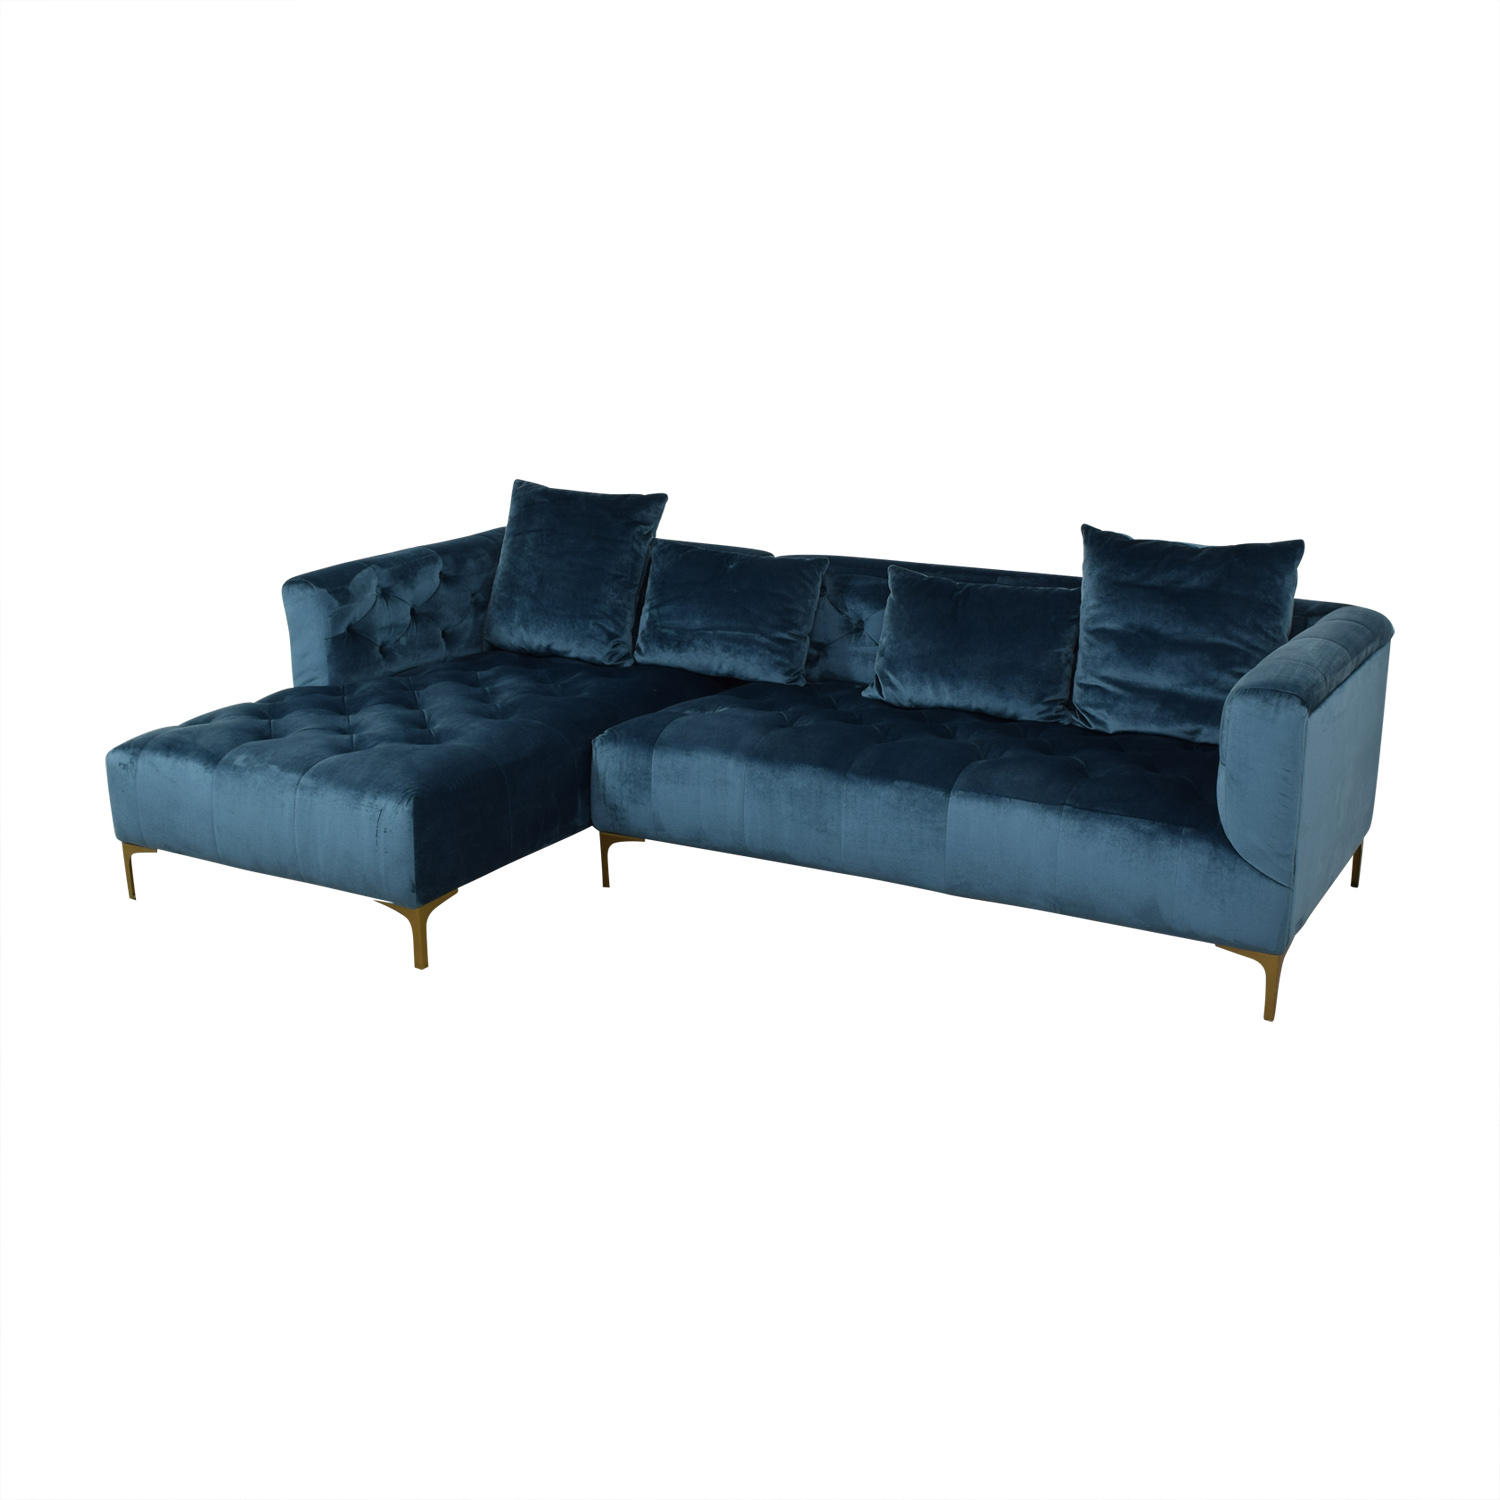 Ms. Chesterfield Ocean Blue Tufted Left Chaise Sectional on sale